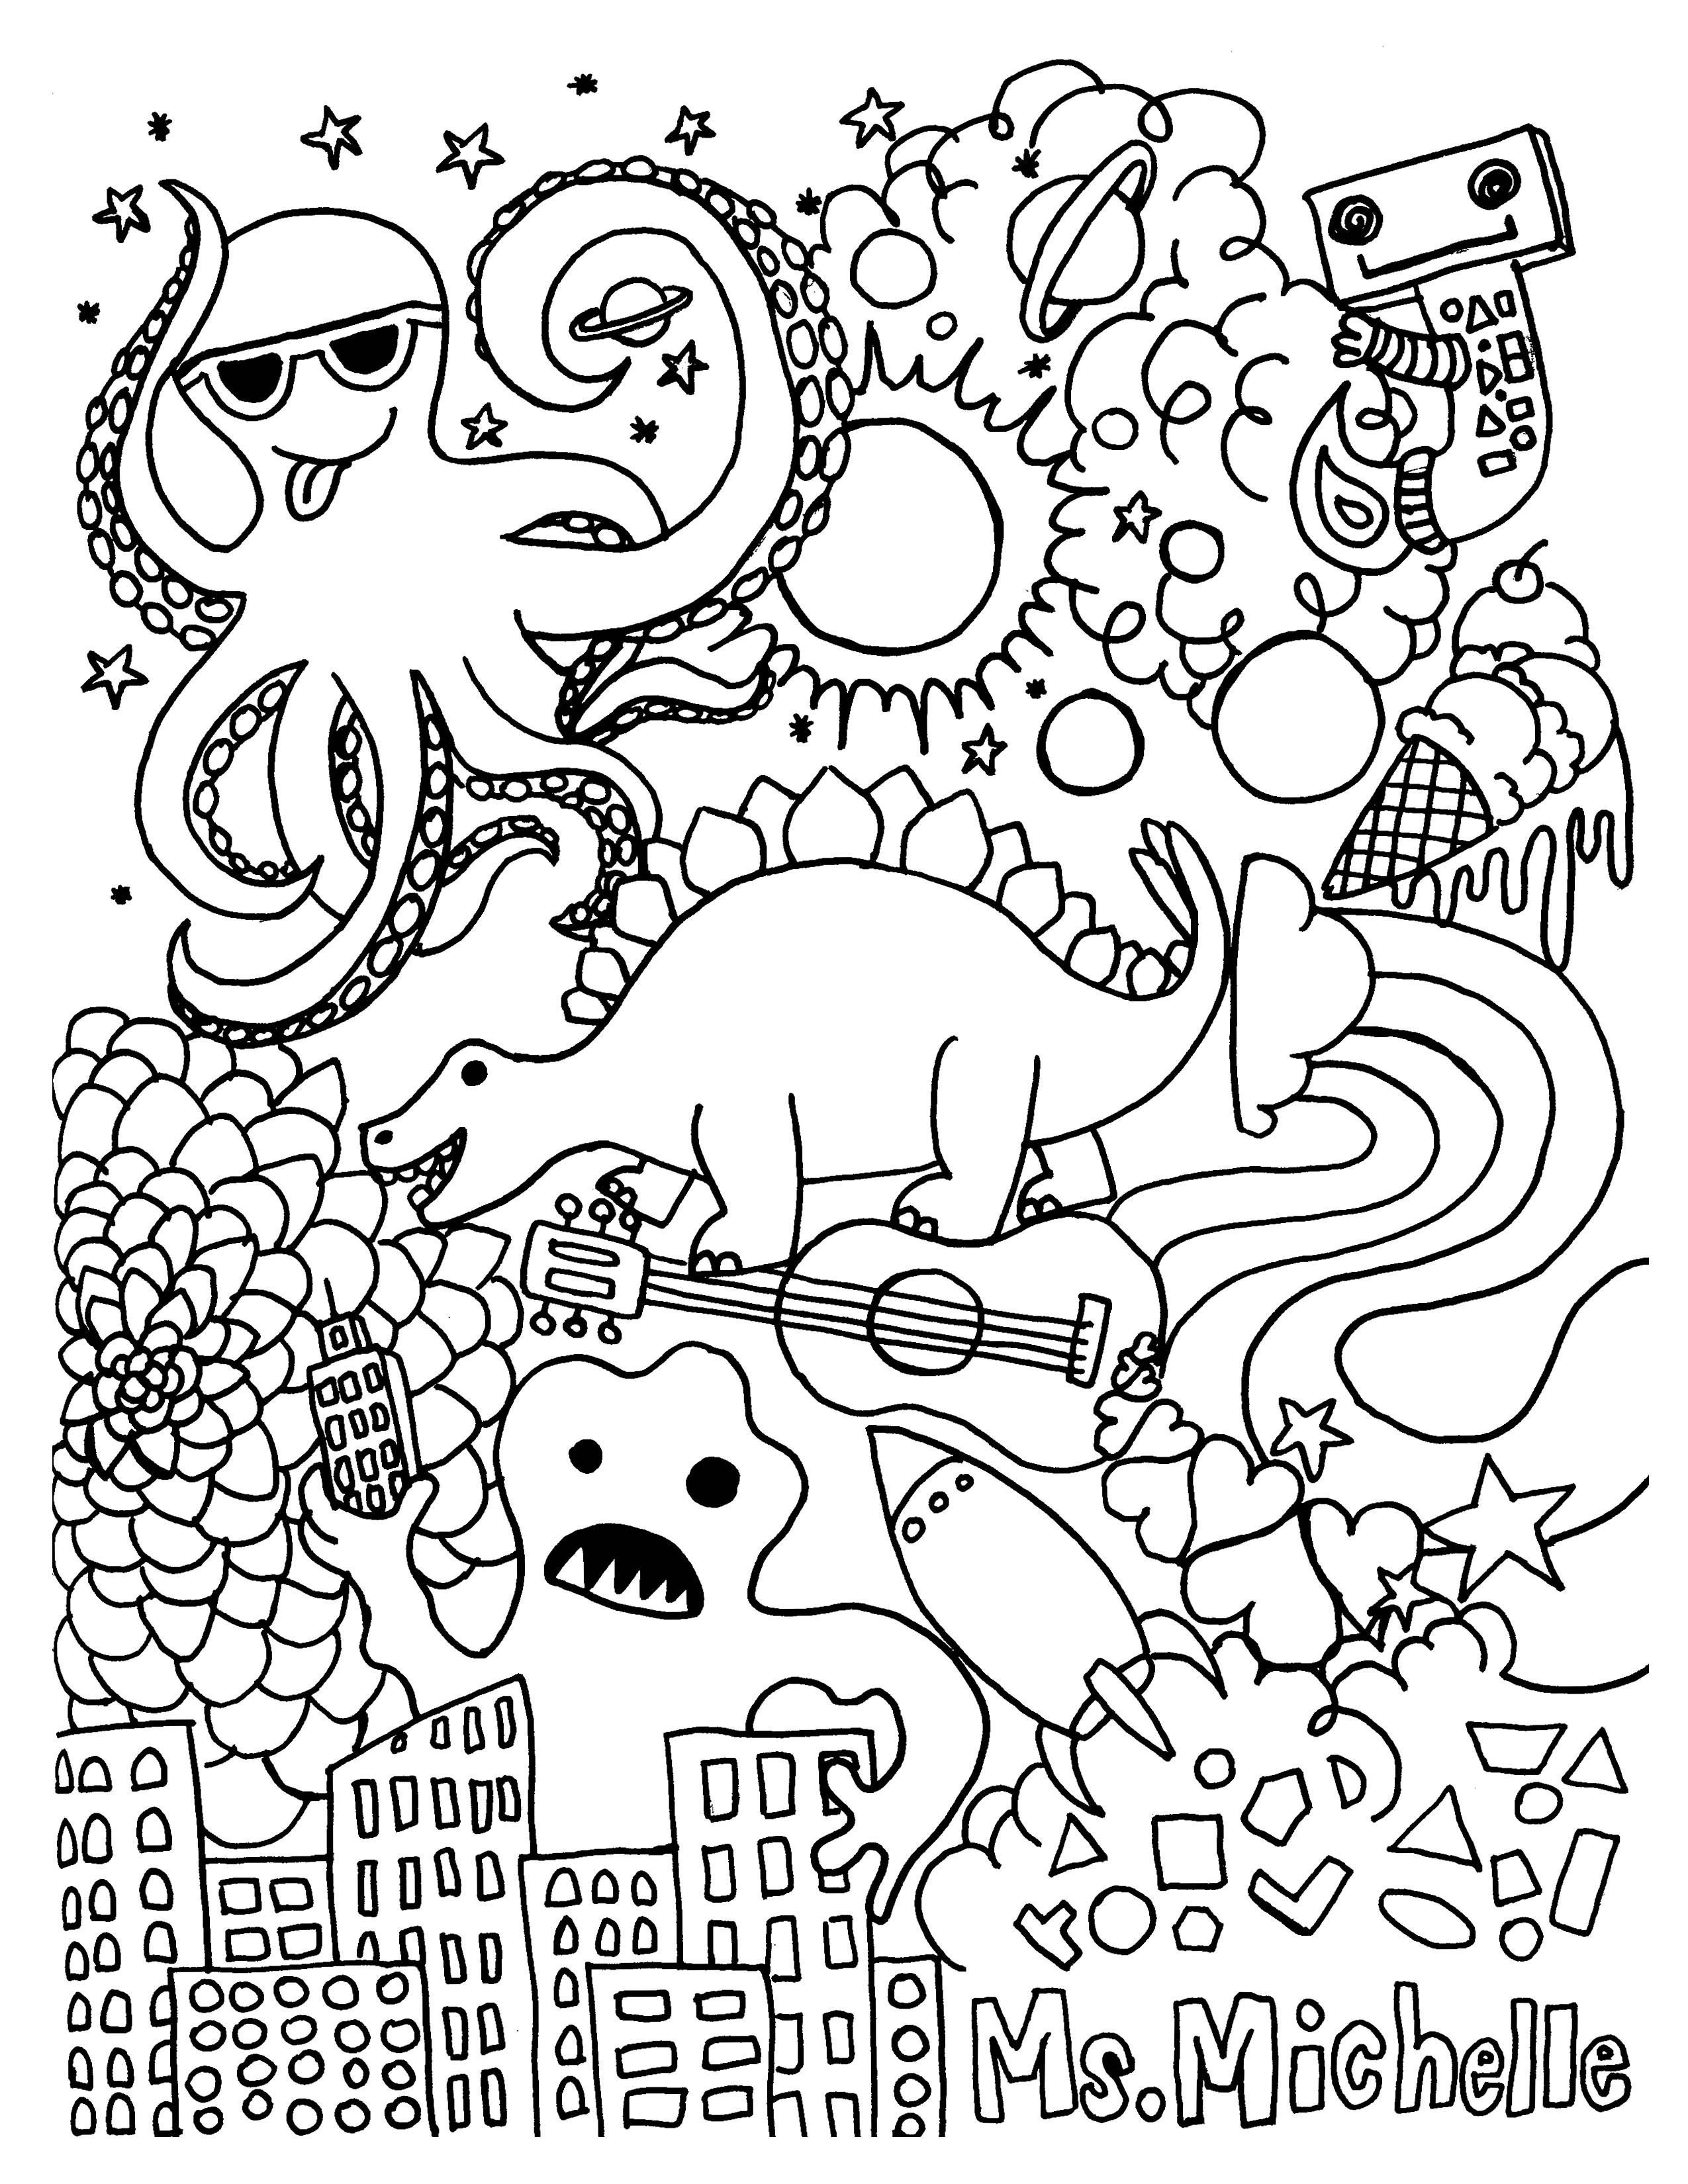 25 Religious Coloring Pages for Kids Collection - Coloring Sheets